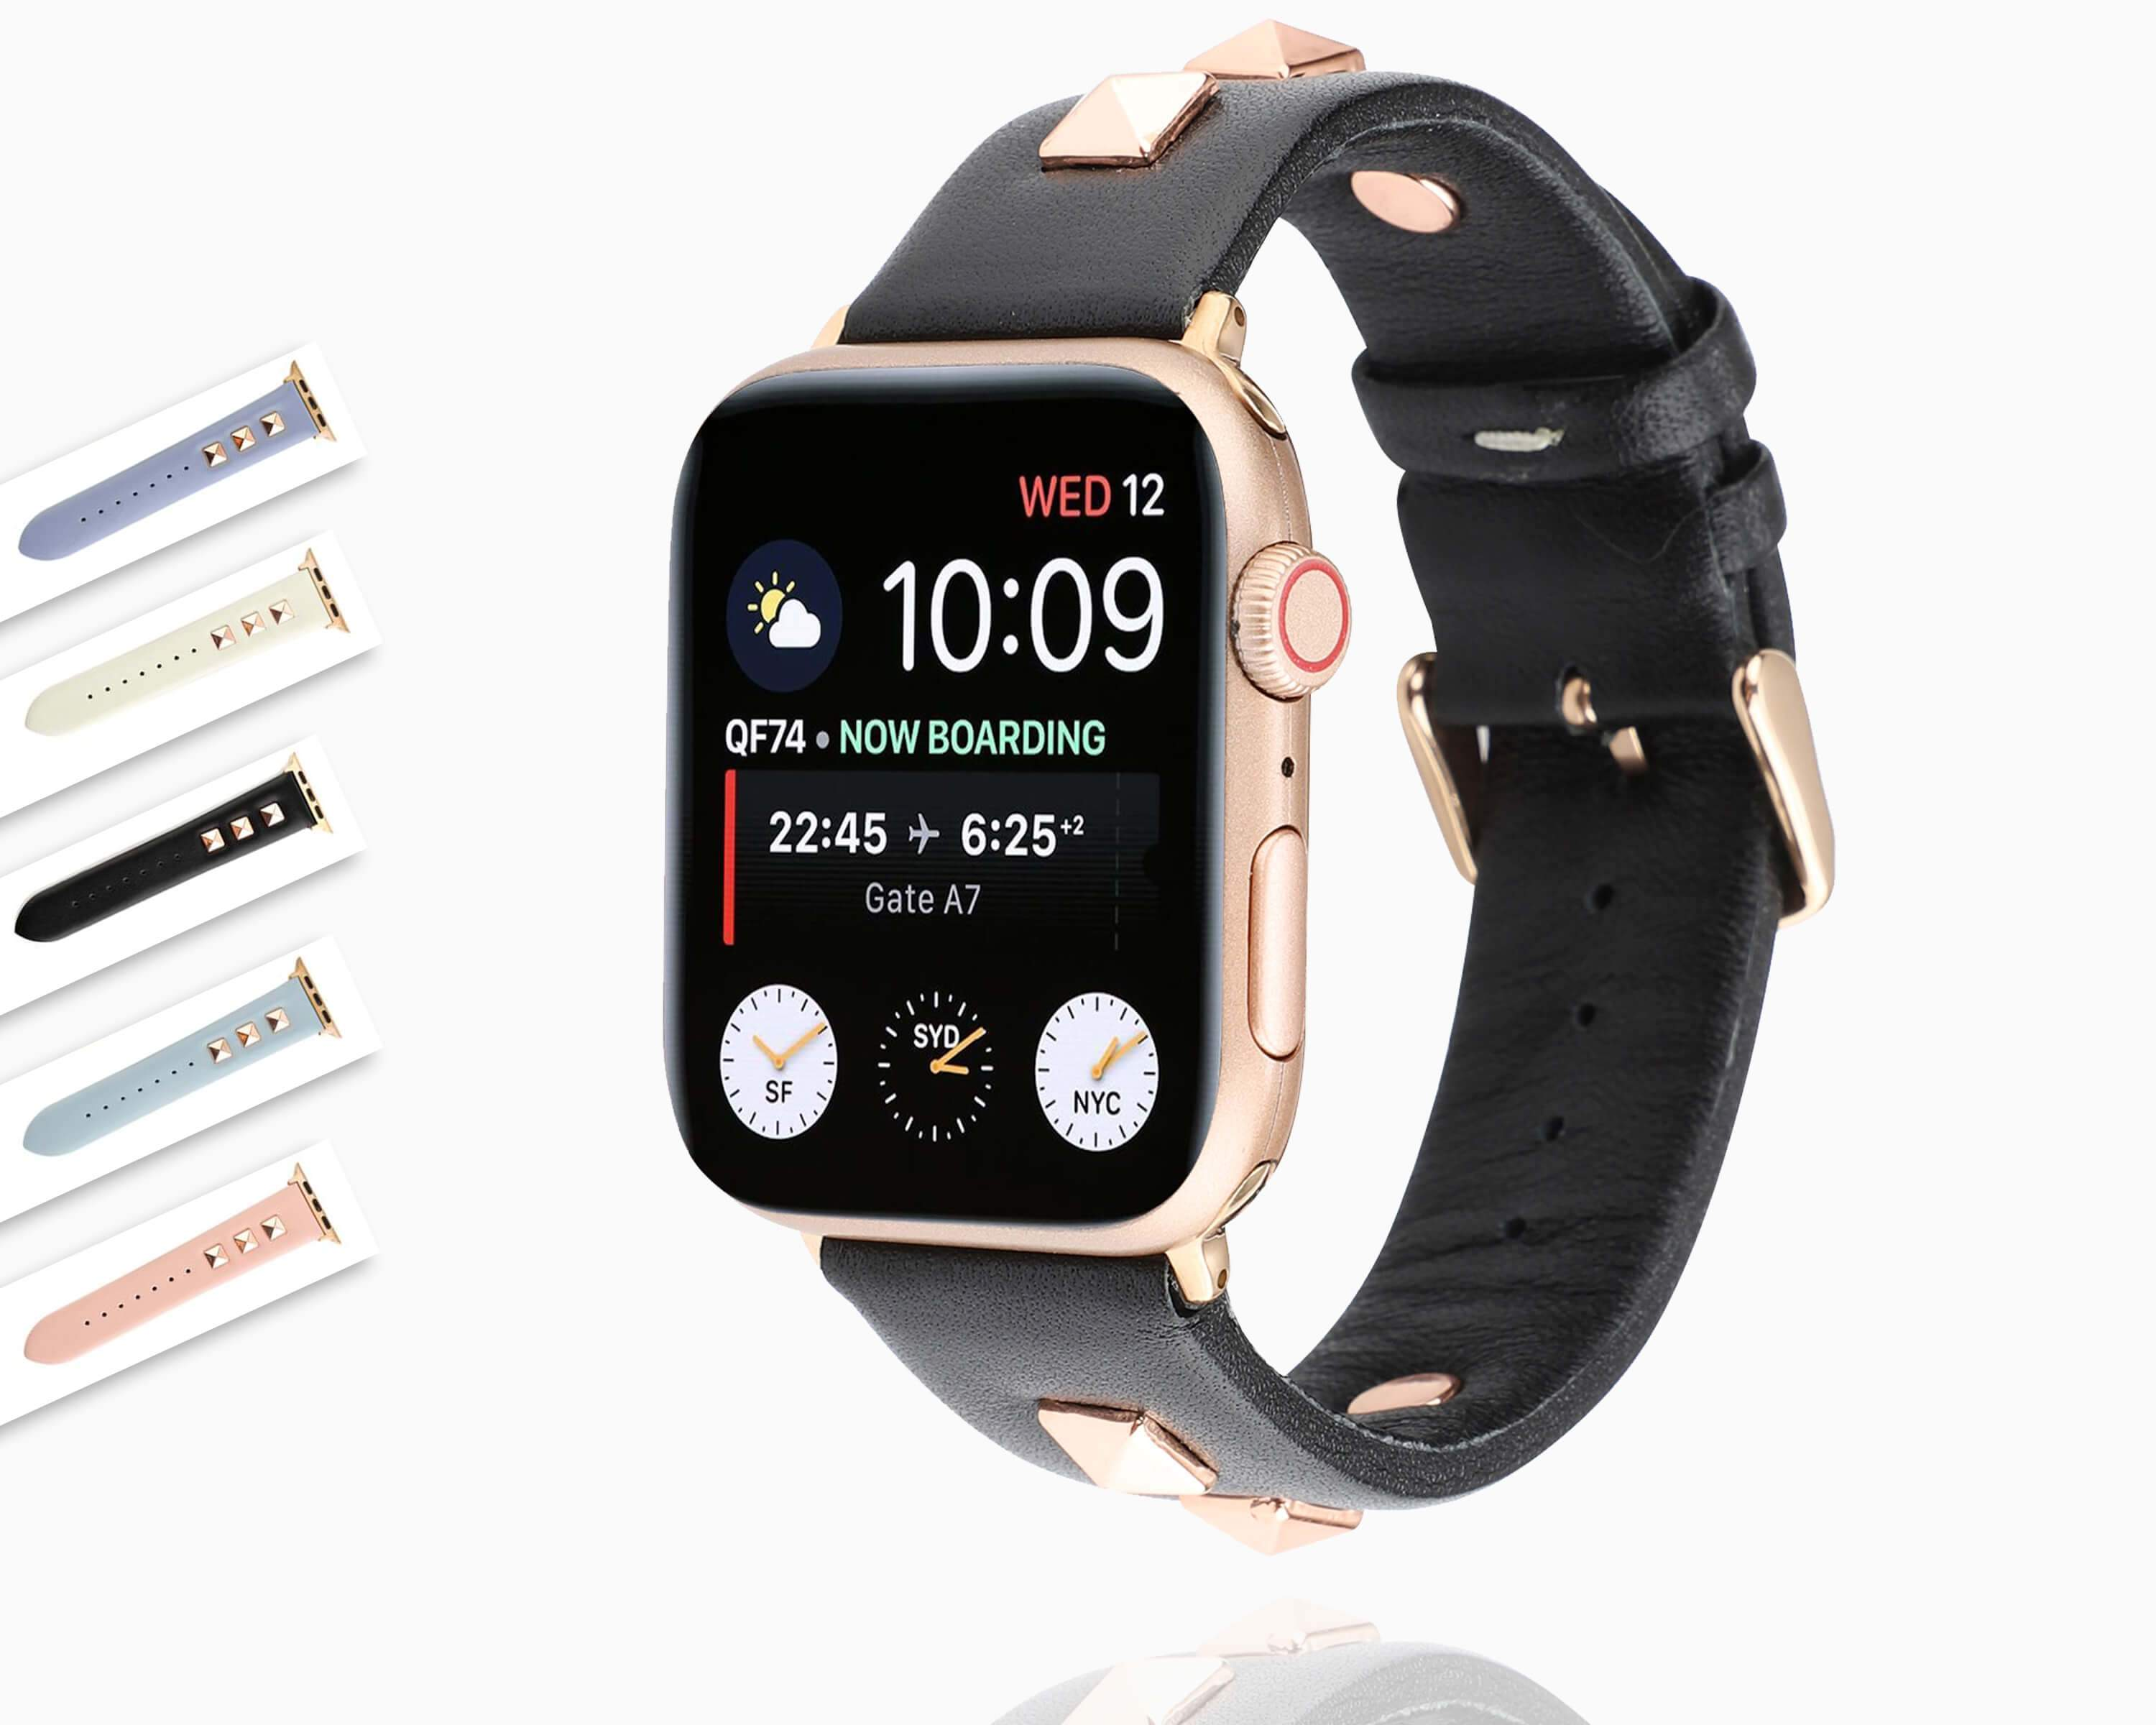 Apple Watch Band Rose Gold Metal Rivet Leather Sport Strap For Iwatch Www Nuroco Com